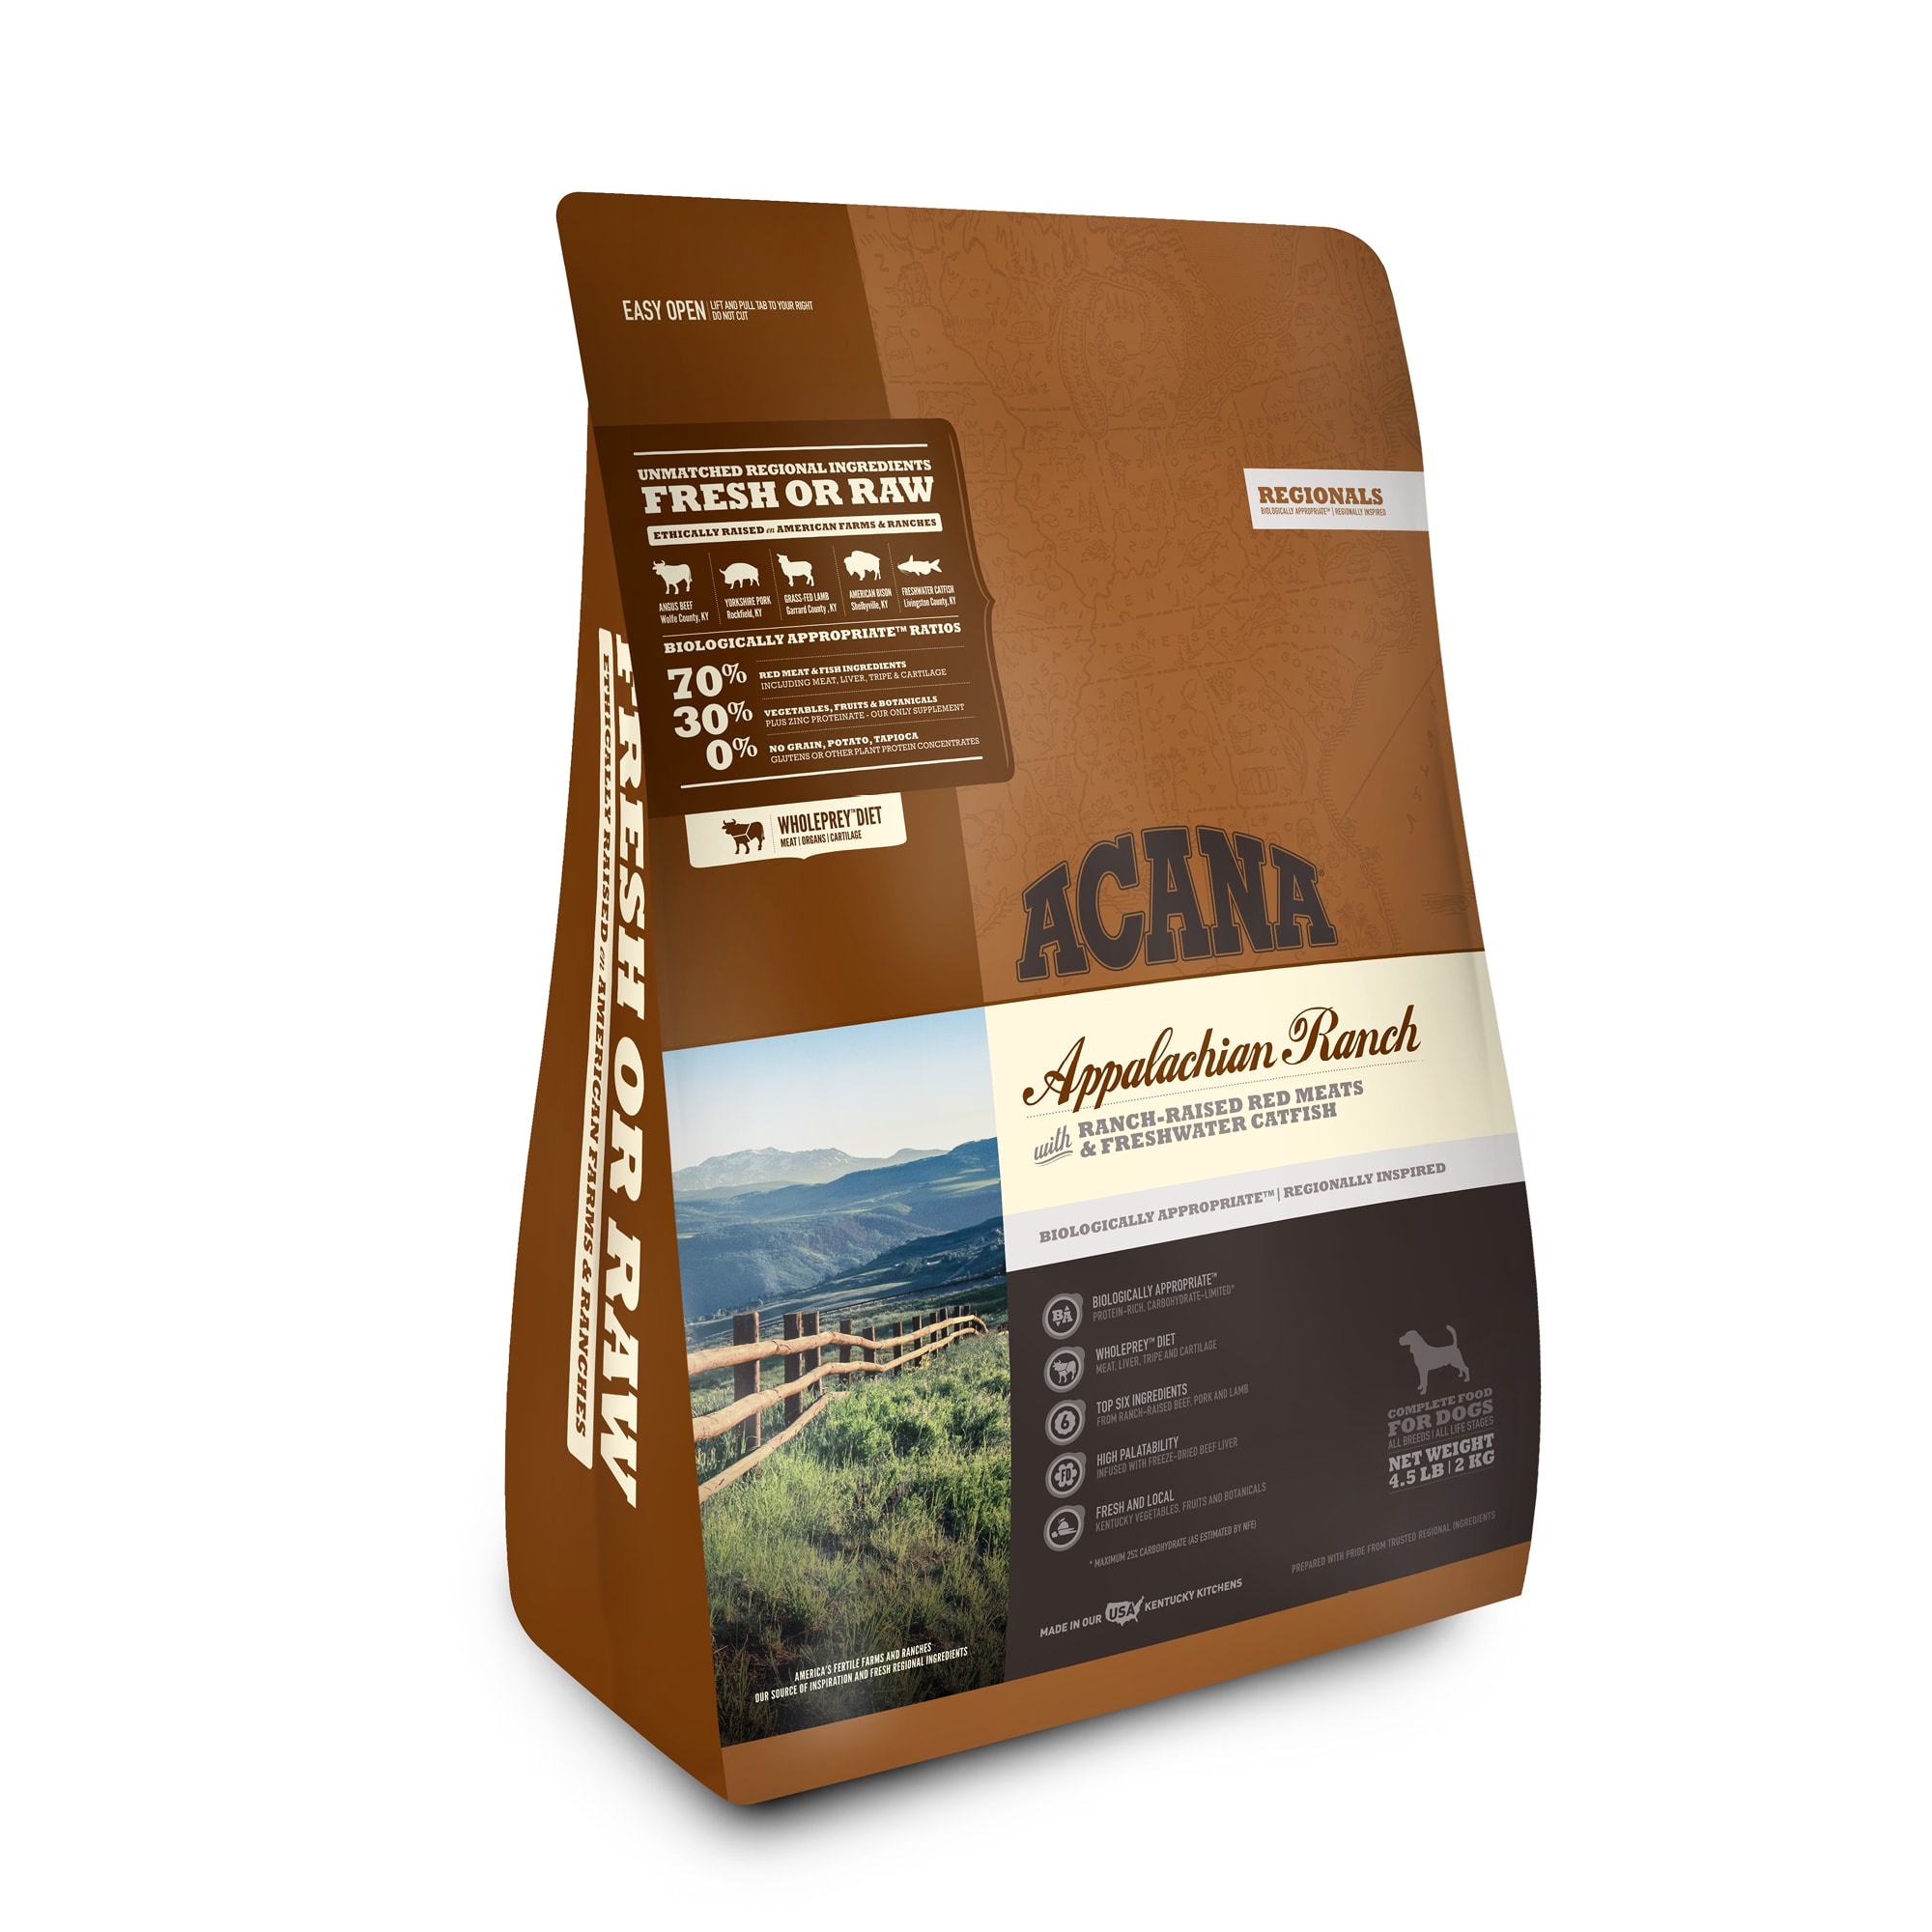 ACANA Appalachian Ranch Grain Free High Protein Freeze-Dried Coated Beef Pork Lamb Bison and Fish Dry Dog Food, 4.5 lbs.